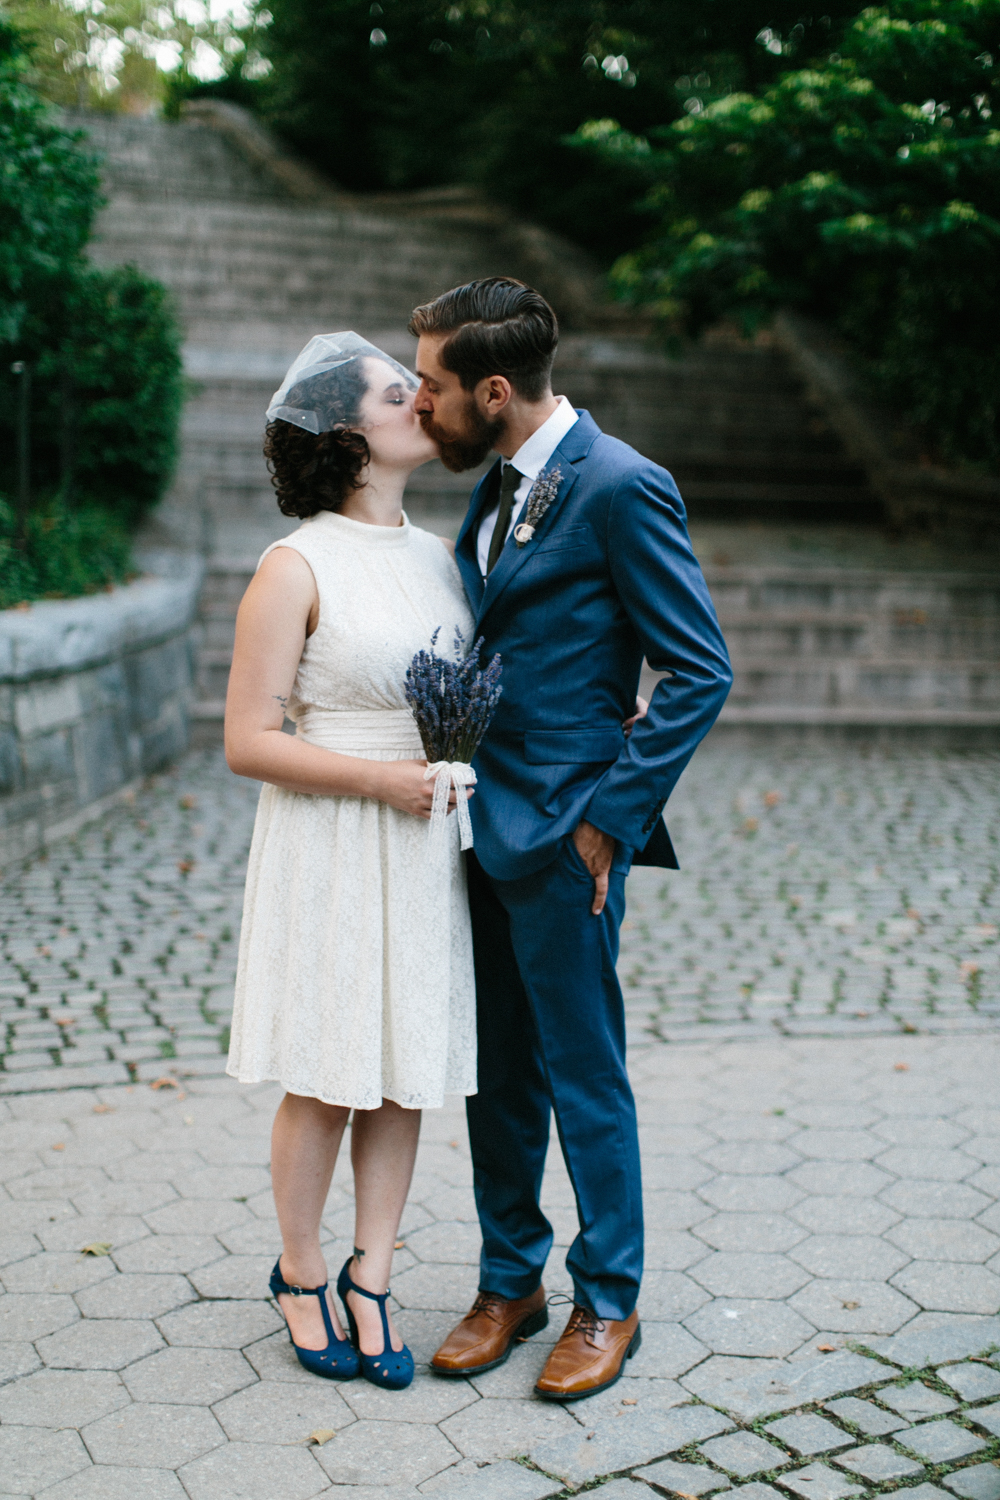 NYC Elopement photos